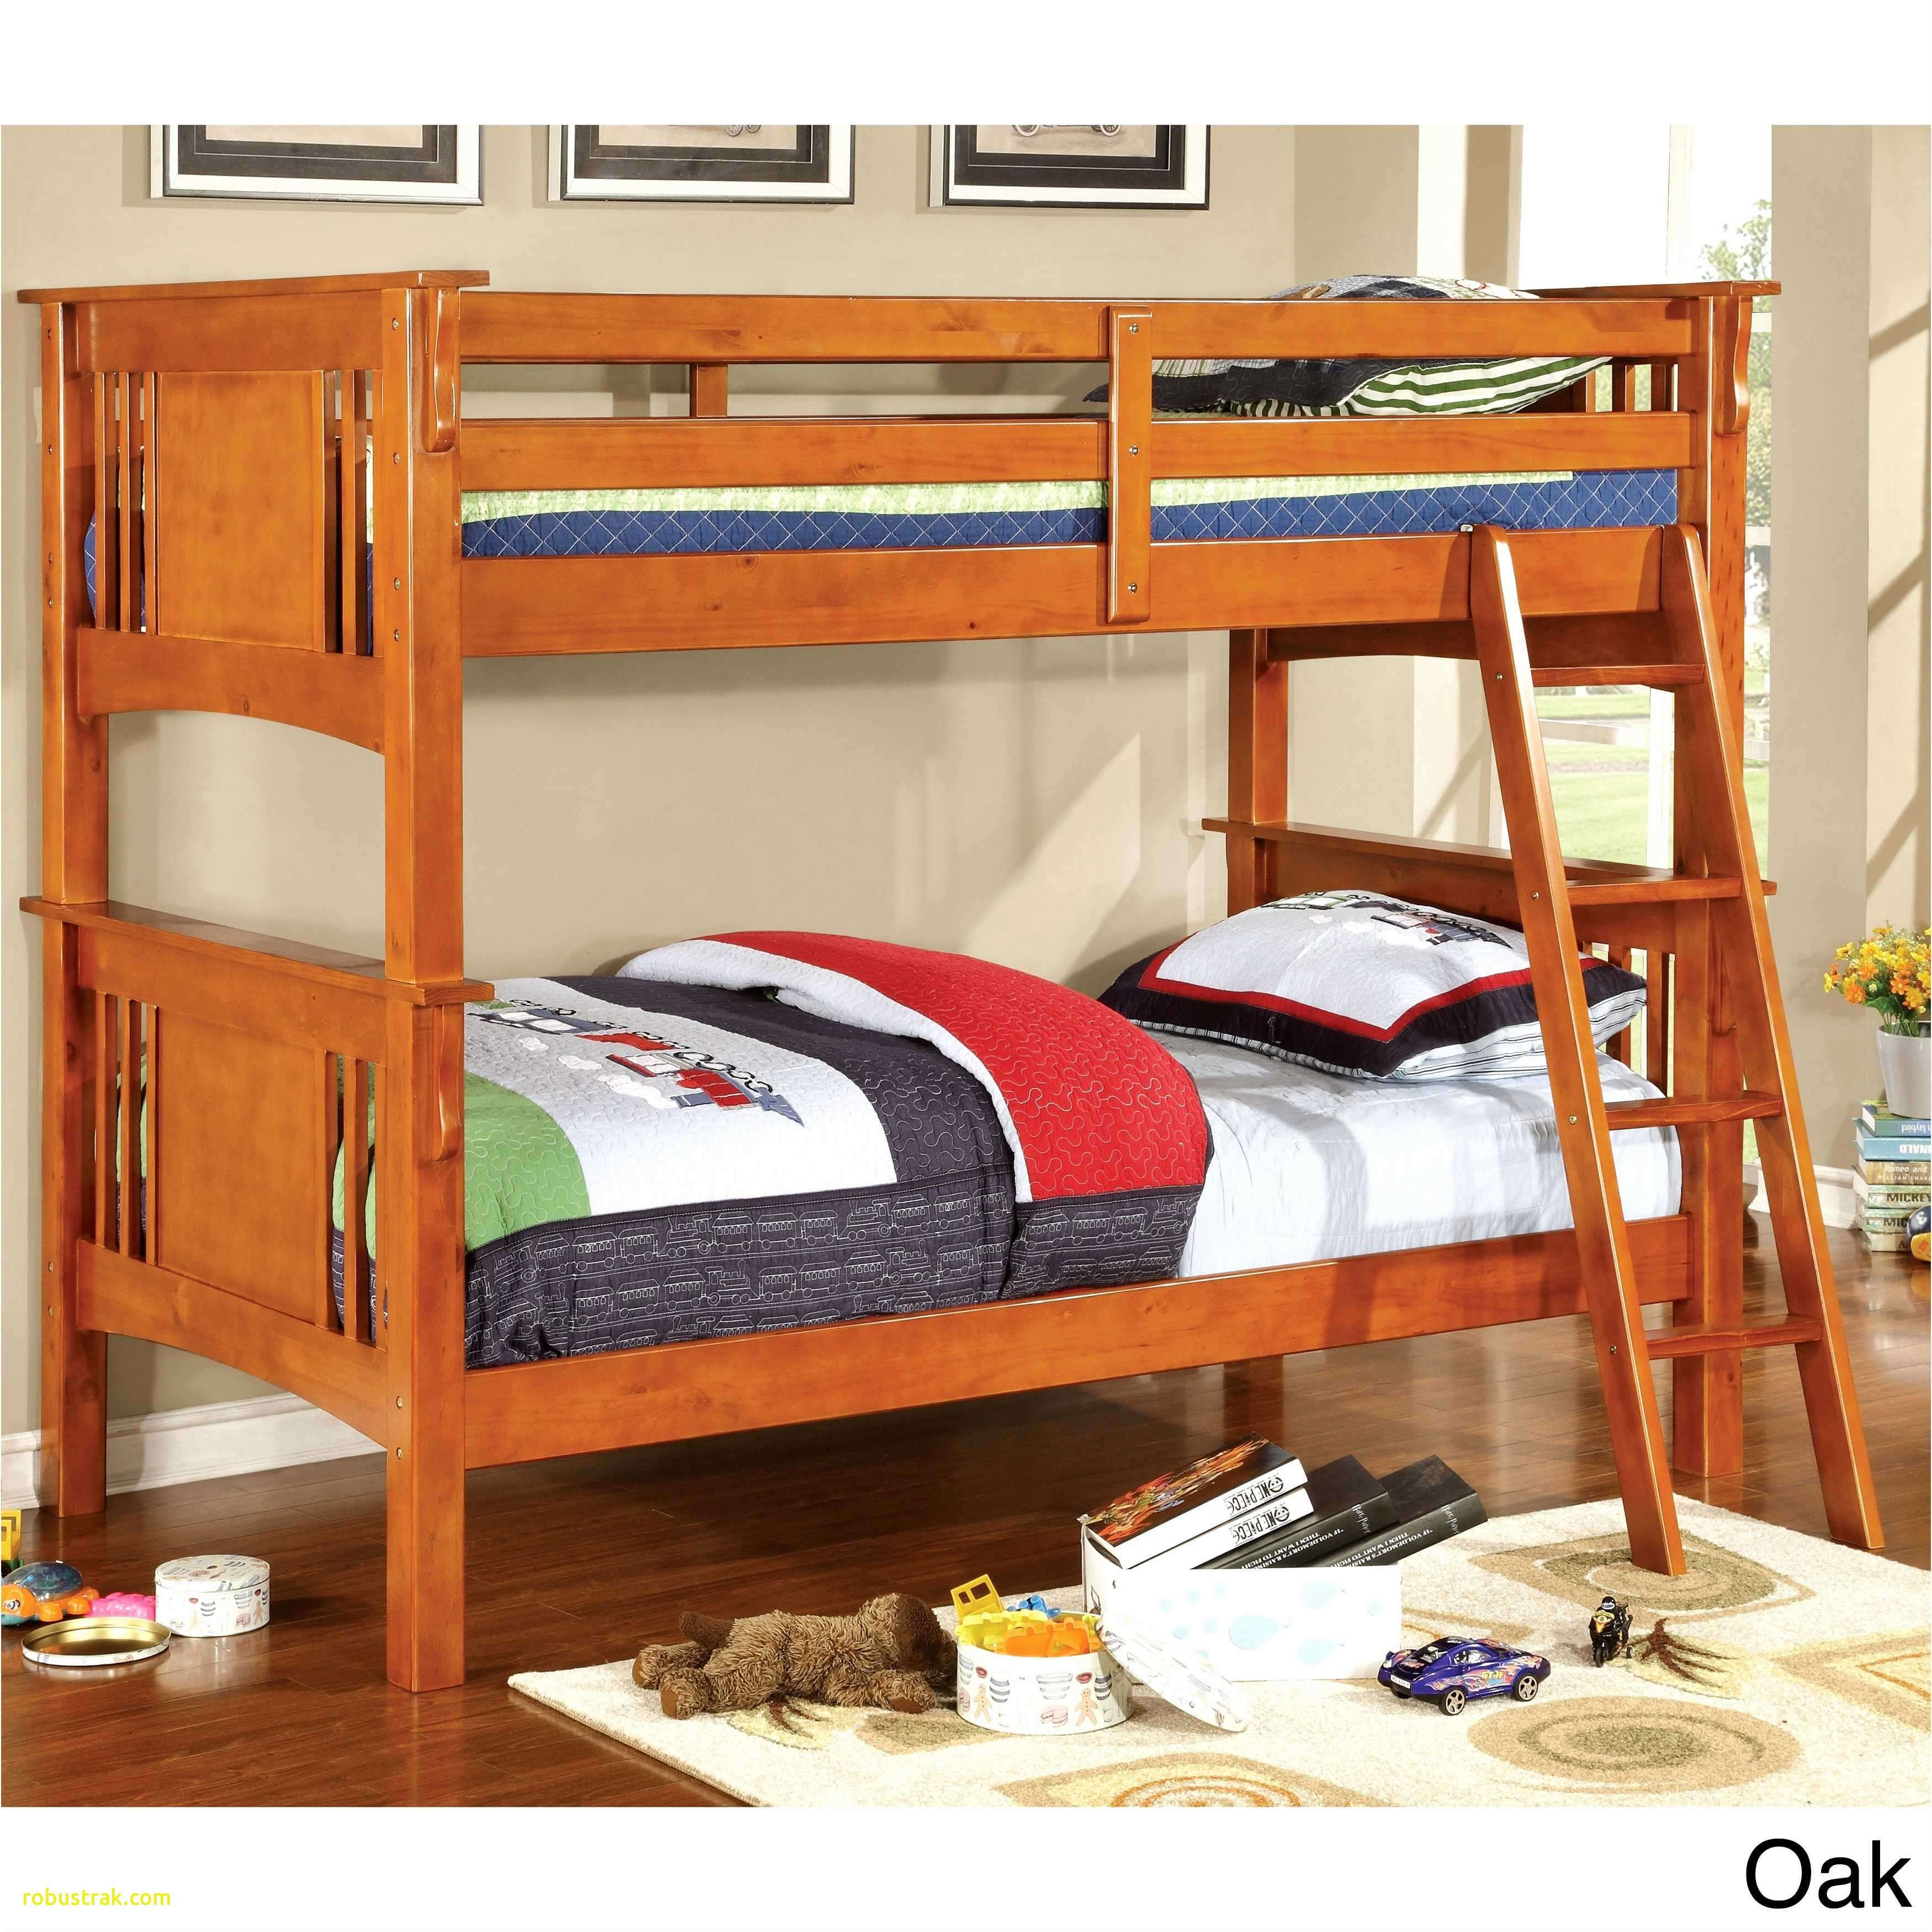 Fresh Queen Size Loft Bed for Adults Bunk beds with